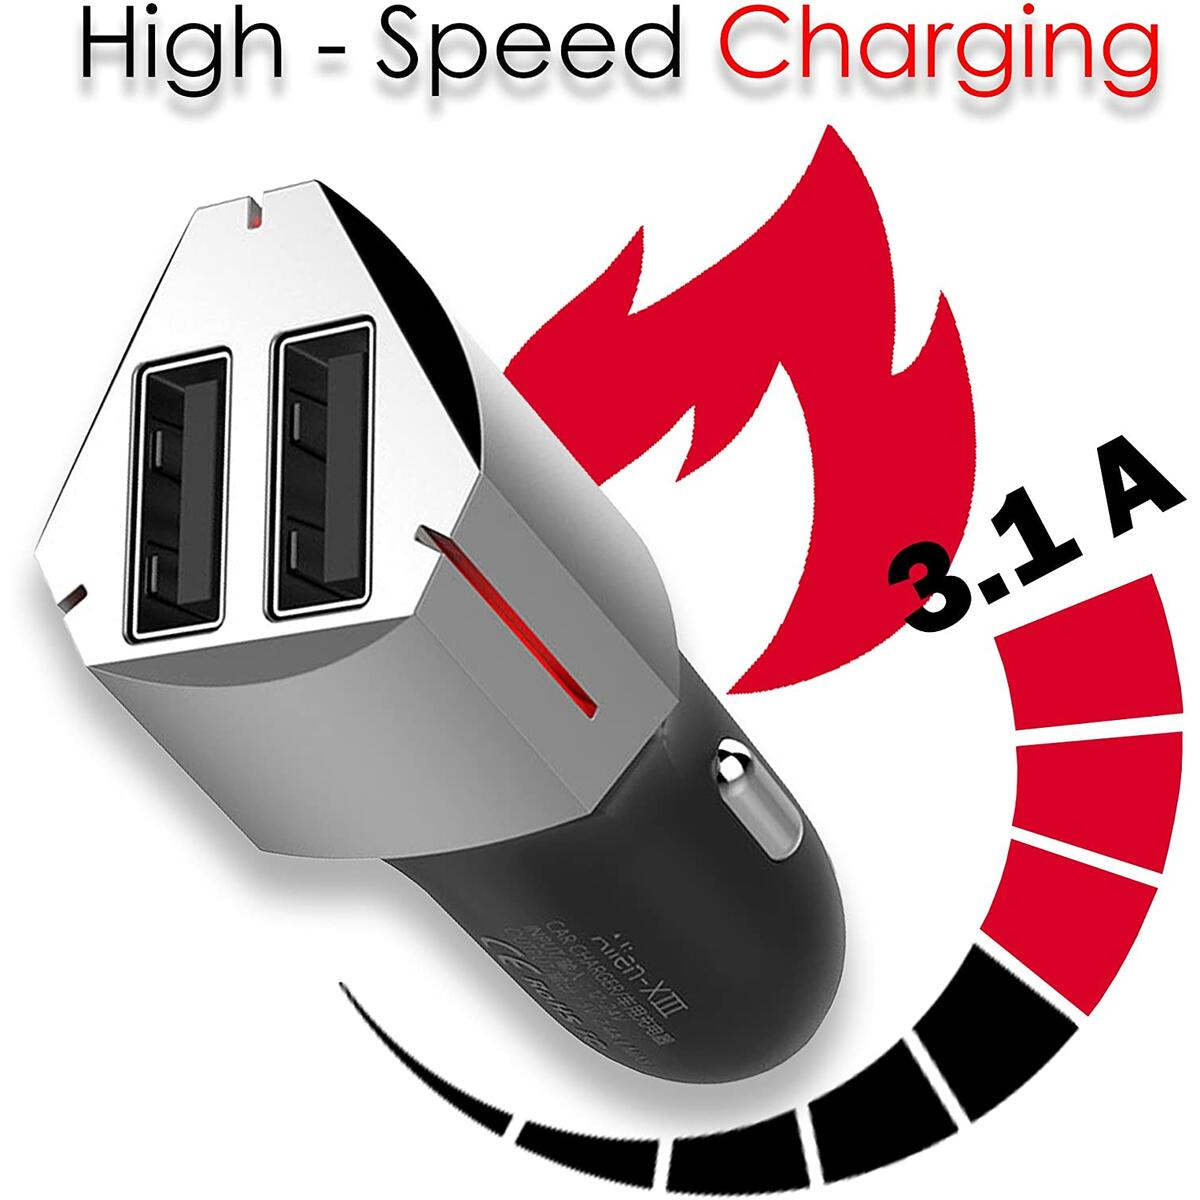 USB Car Charger Fast Speed Adapter - Universal Cigarette Lighter Smart Charger for Android Cell Phone - Apple iPhone - Samsung Galaxy - Portable Car Mount Charger with Double Port - Black